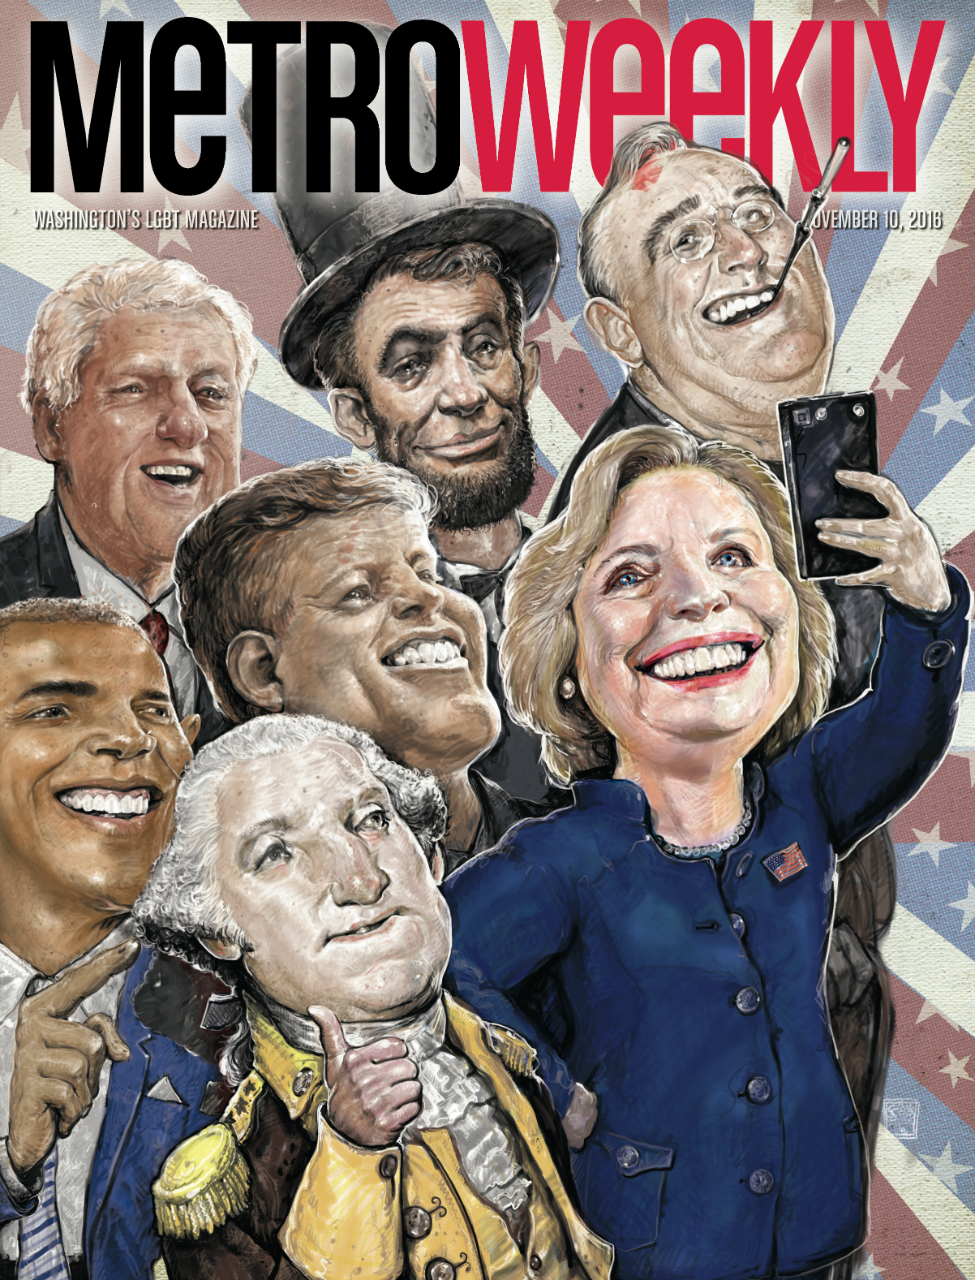 The cover we wish we'd been able to use, Illustration by Scott G. Brooks